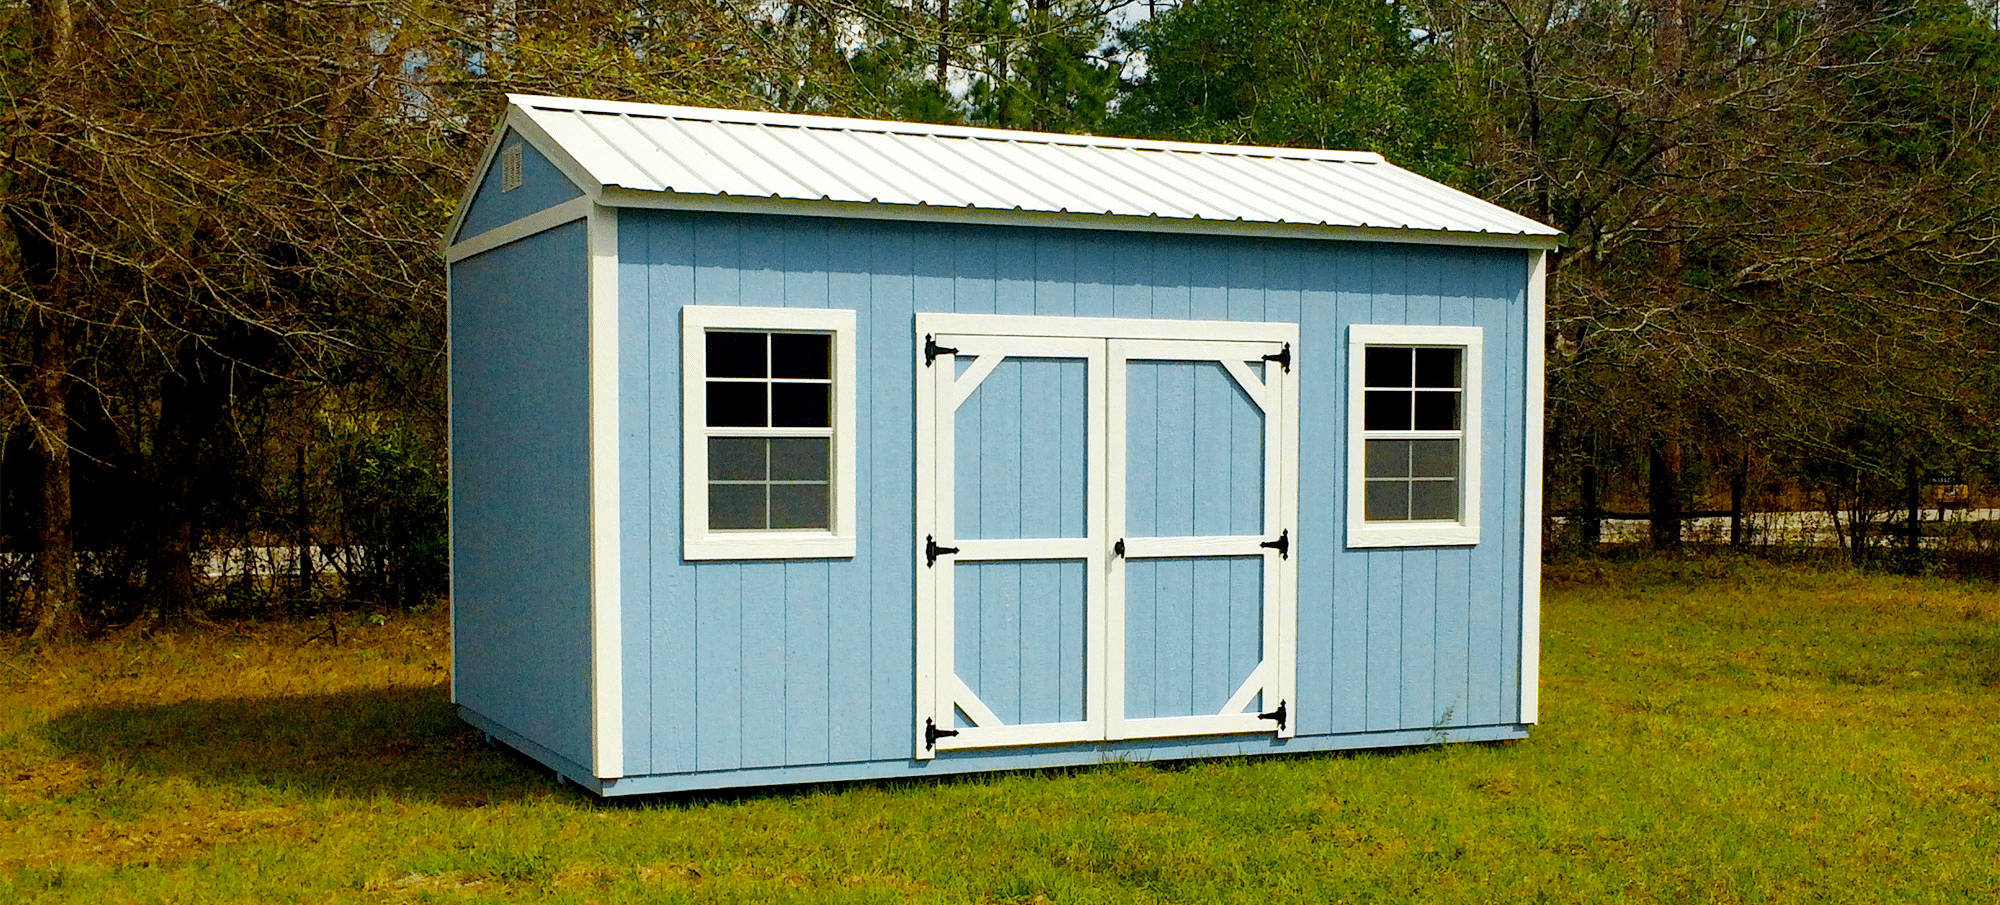 buildings watch shed premier youtube commercials sheds portable